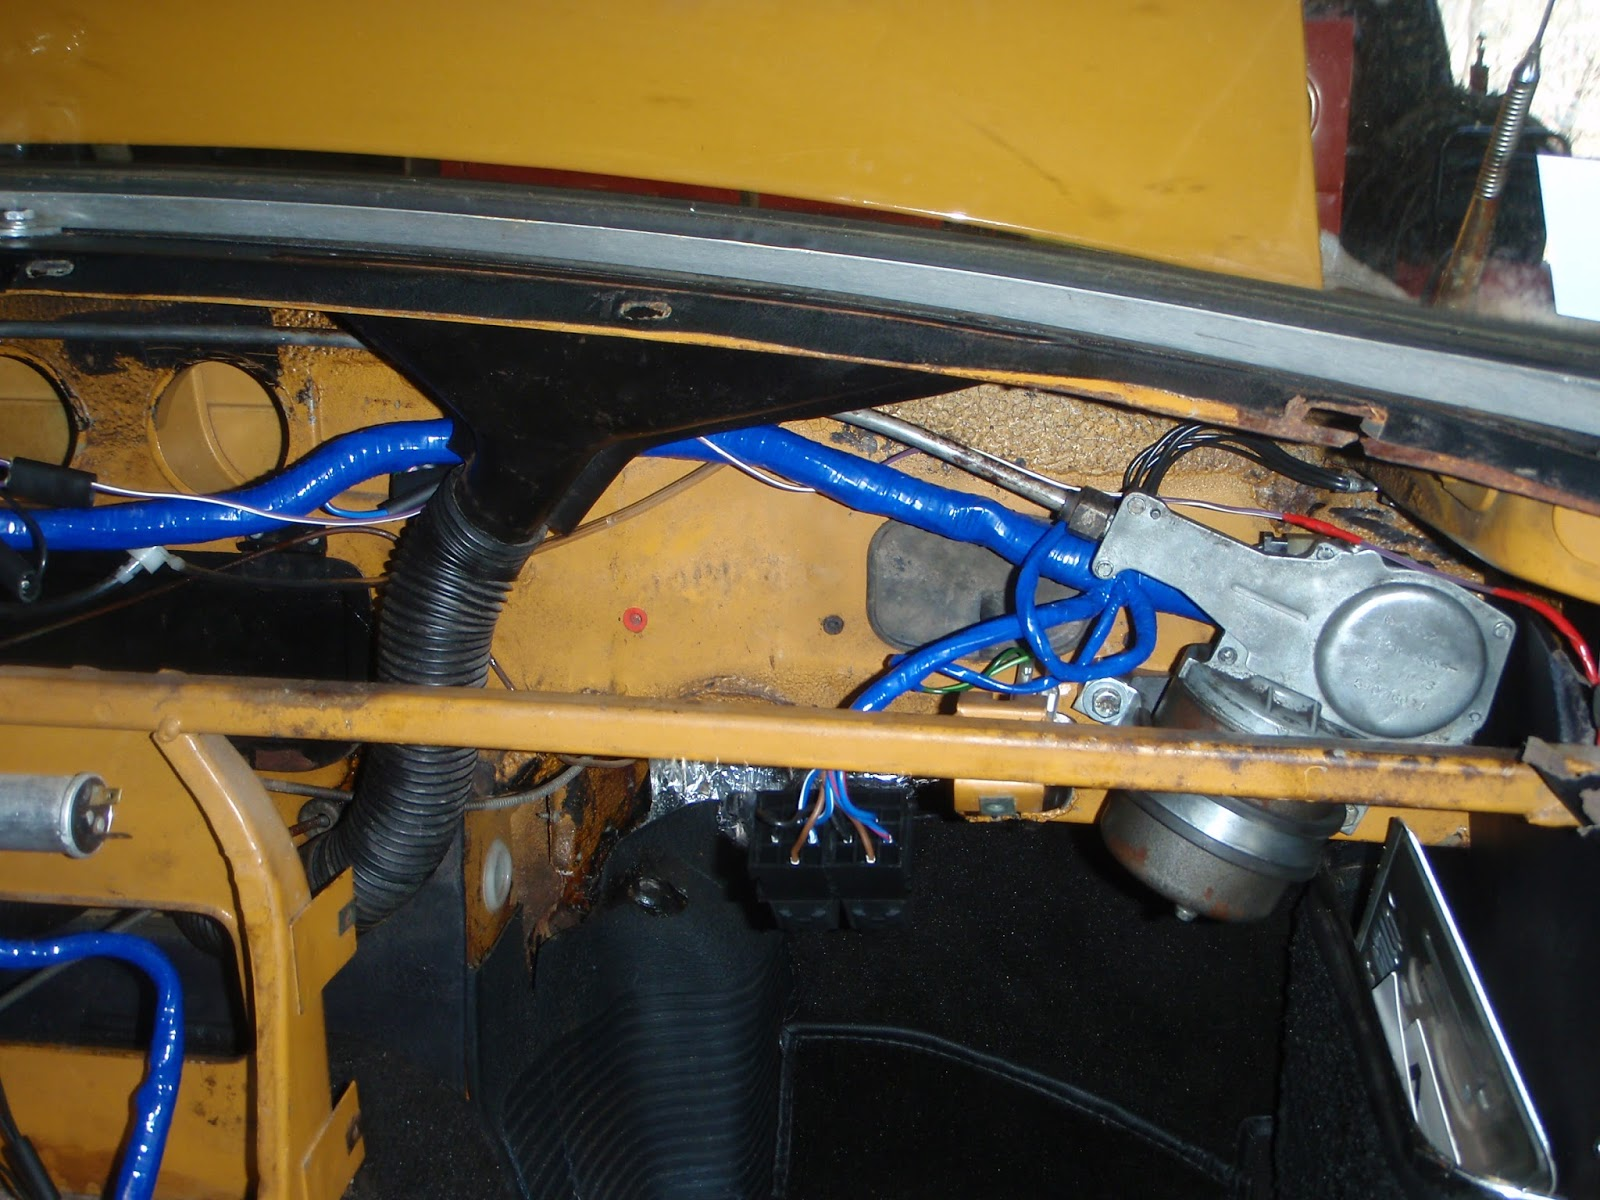 Wiring Harness Installed Mgb In The Garage New Vinyl Top Alternator Etc Behind Passenger Side Dash I Windshield Wiper Motor At Same Time You Can See Headlight Relays Had Dangling